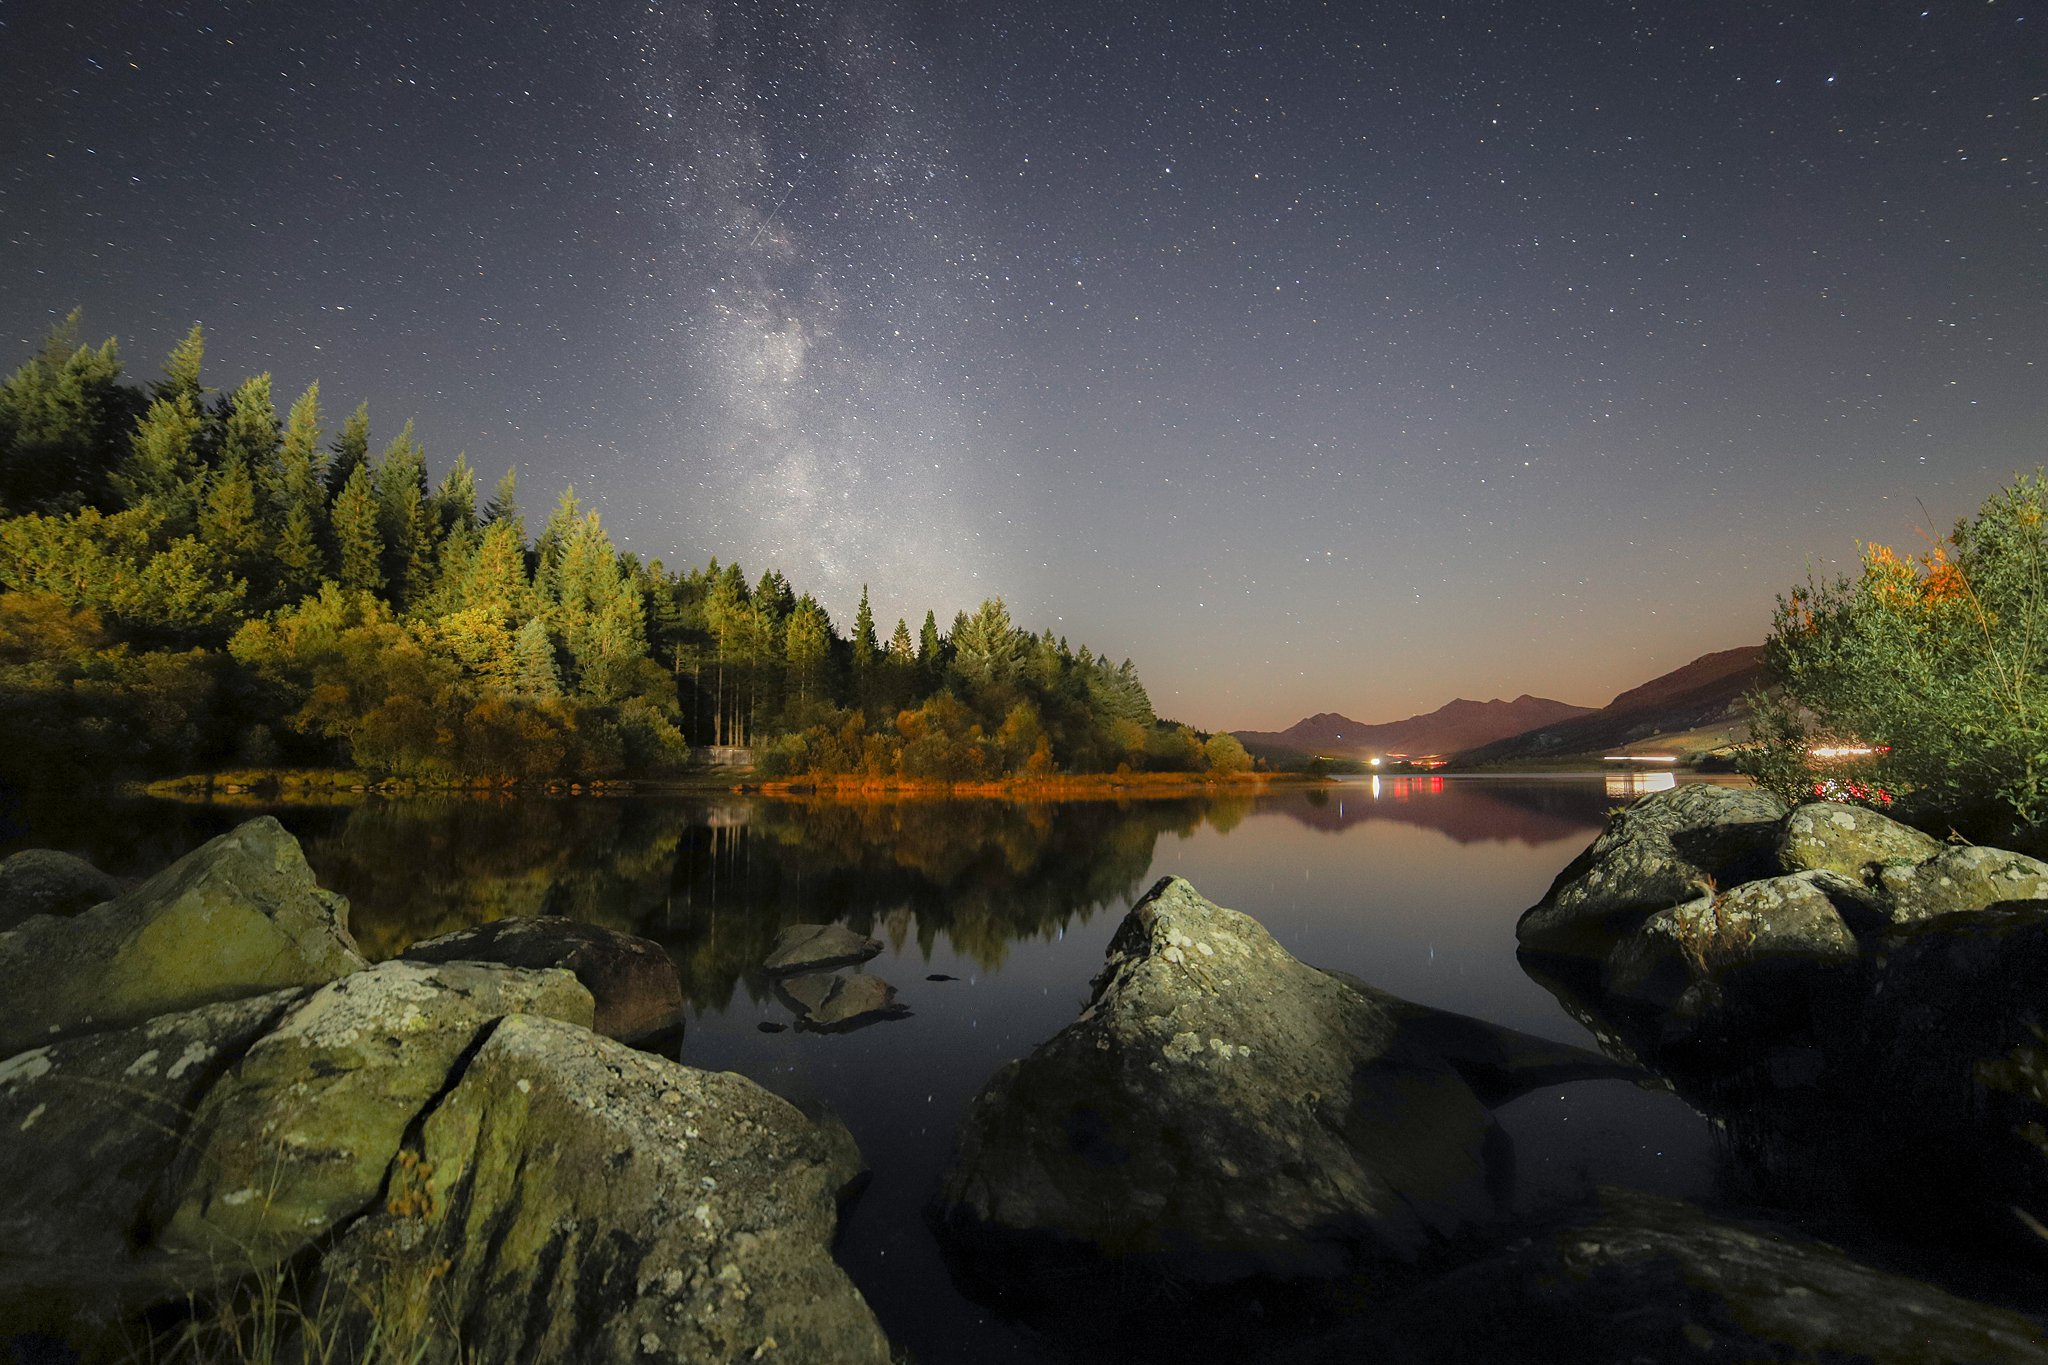 milky way landscape picture